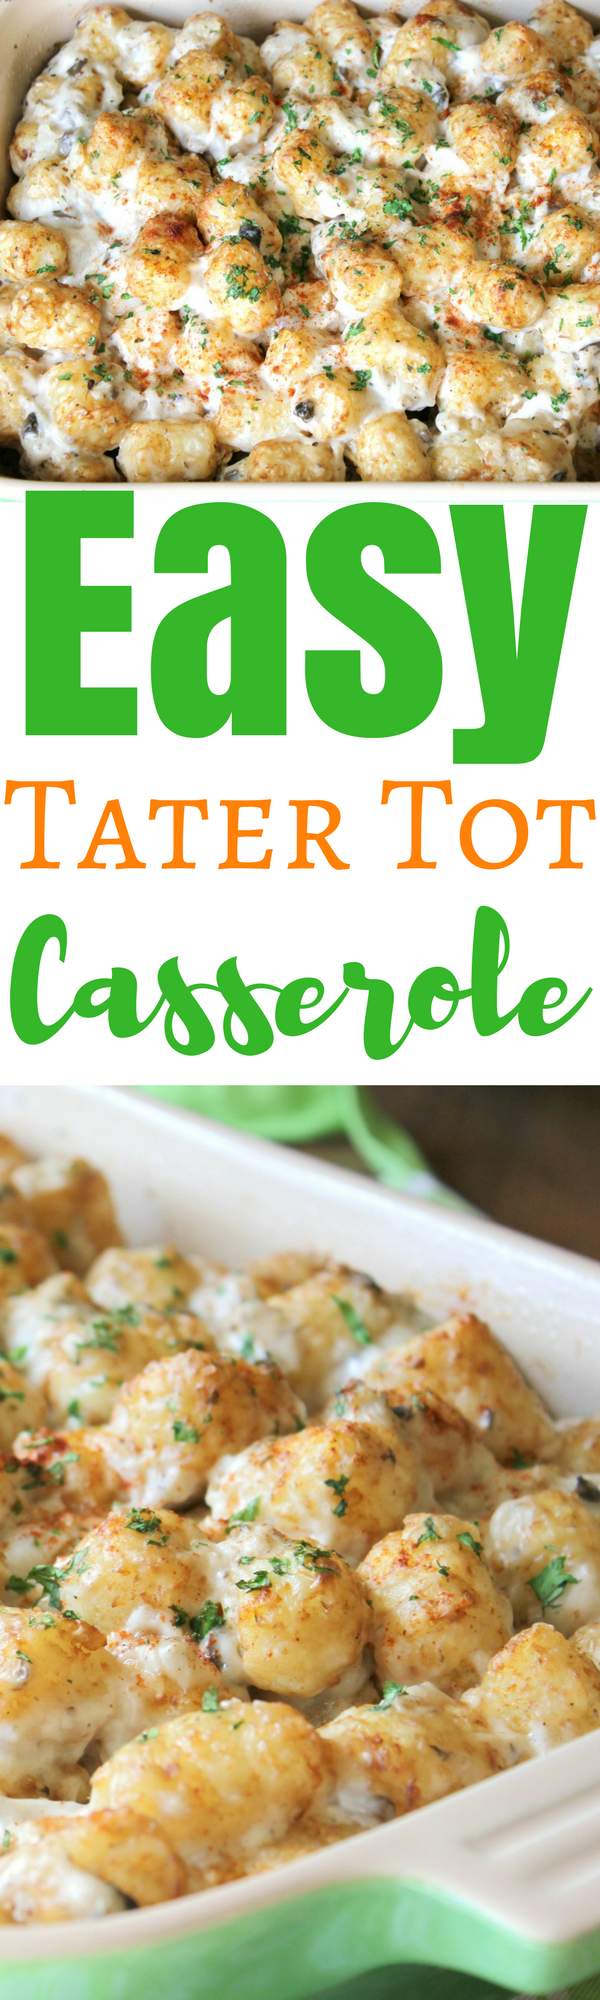 A big green baking dish full of the delicious Easy Tater Tot Casserole recipe.